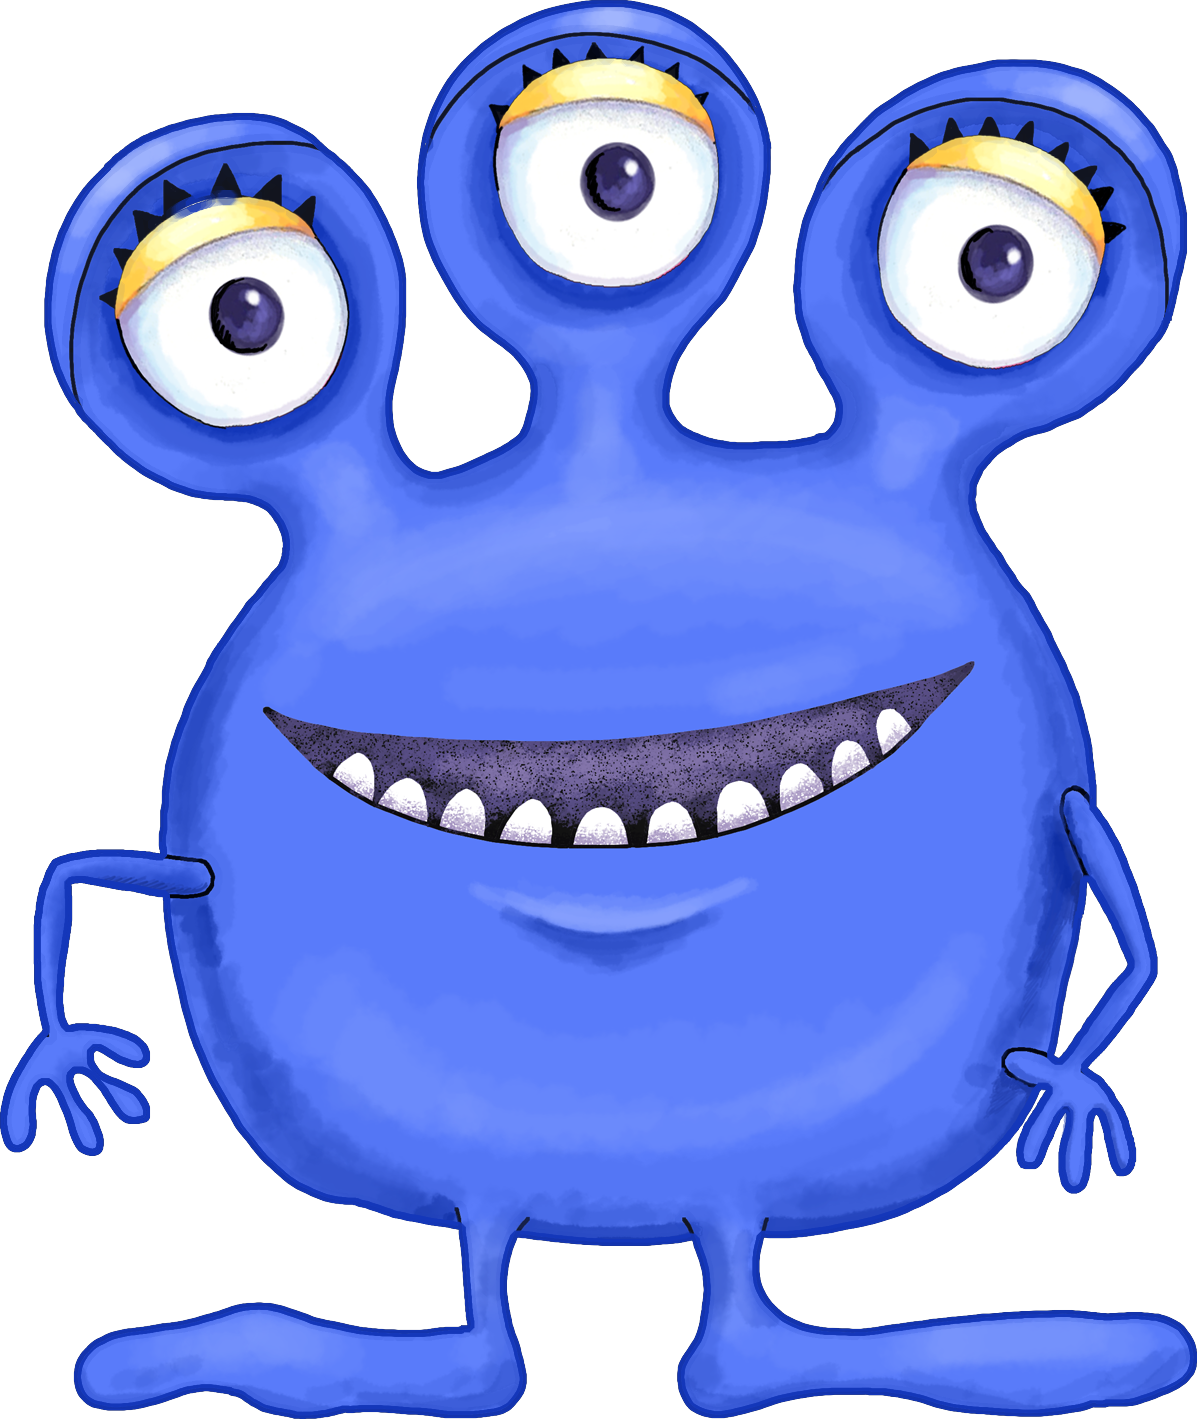 Cute blue purple and. Monster clipart 3 eye